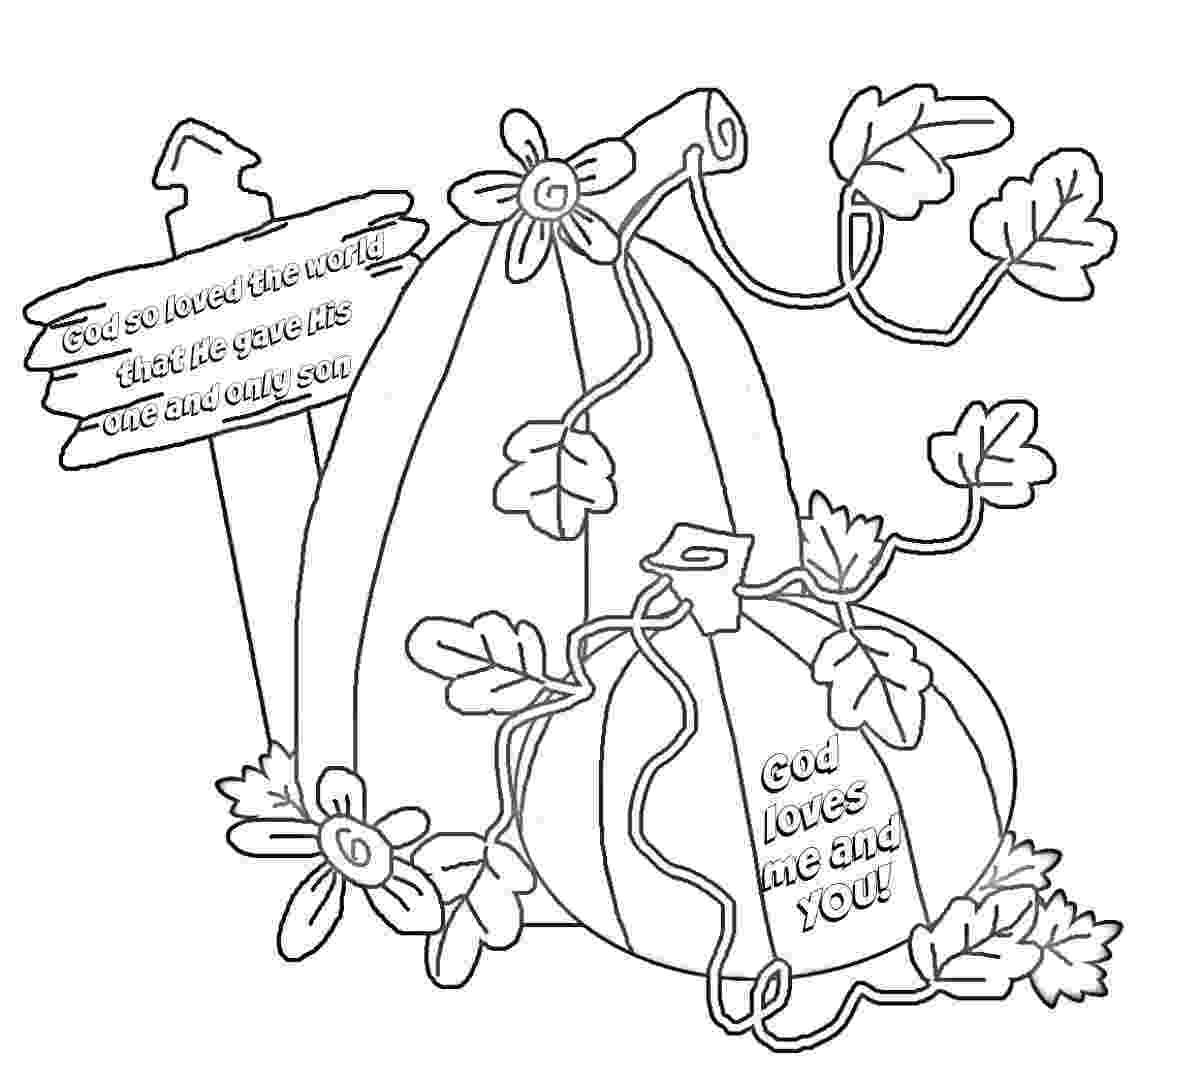 christian bible coloring pages instant download scripture christian art to color pages bible christian coloring